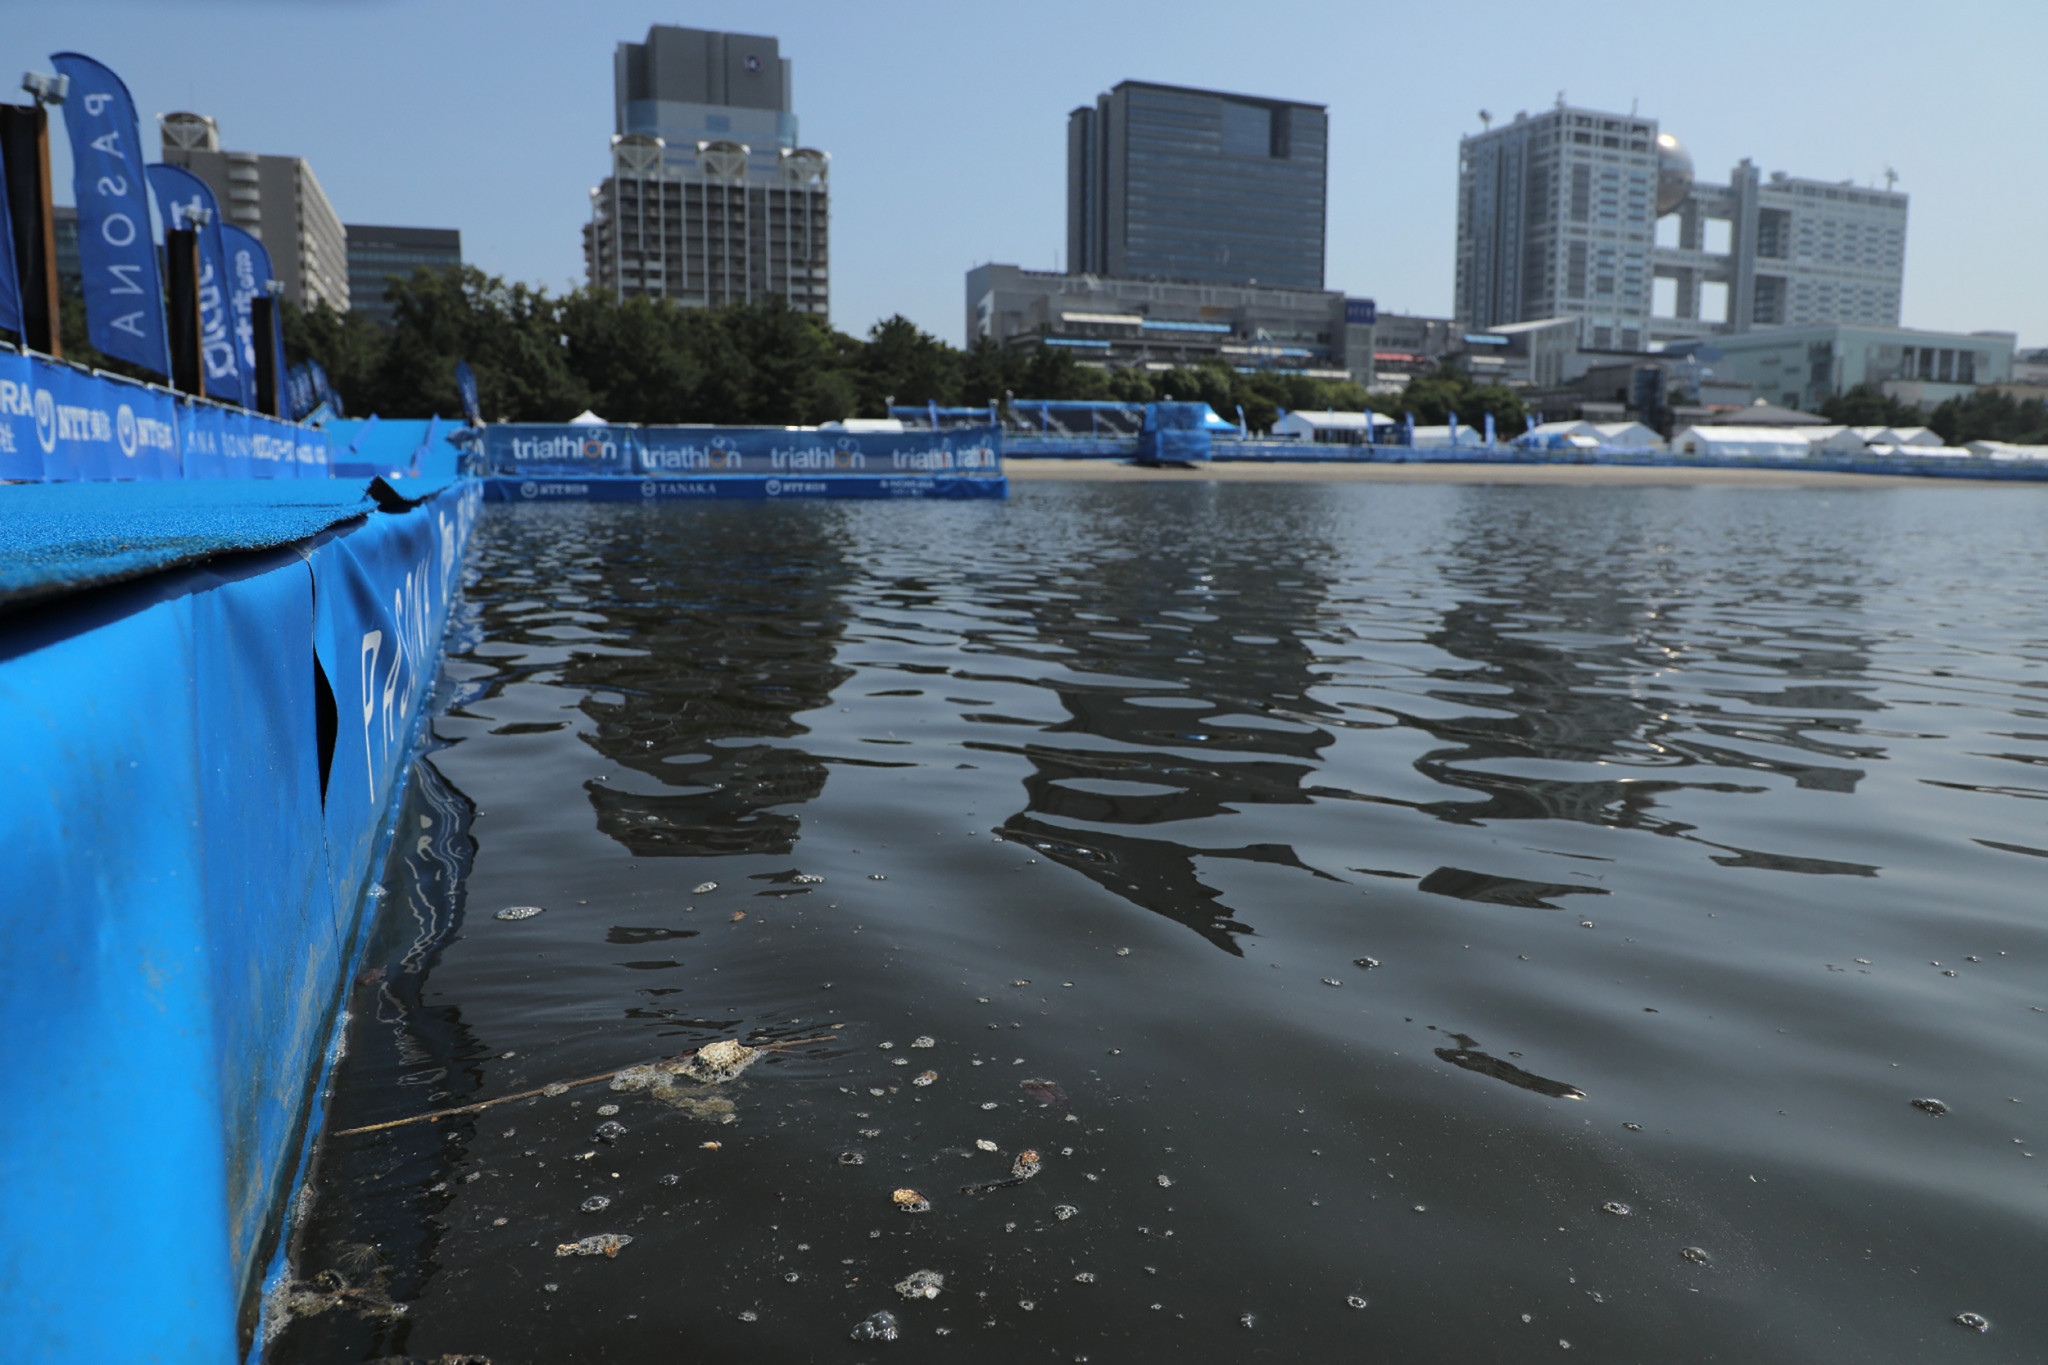 Swimming cancelled at Tokyo 2020 Paratriathlon test event because of bacteria in Tokyo Bay